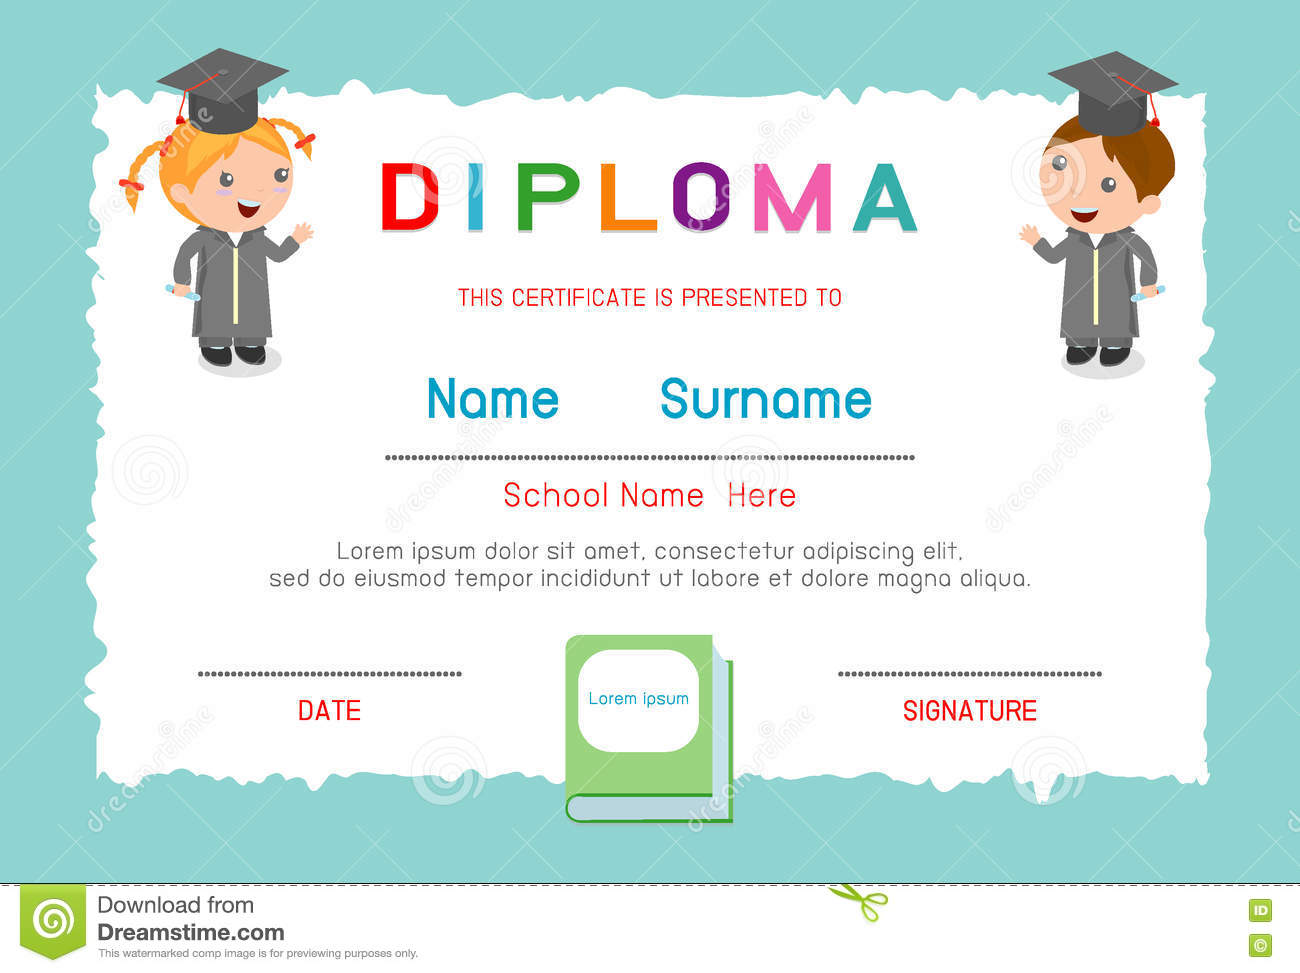 certificates kindergarten and elementary preschool kids diploma certificate background design template diploma template for